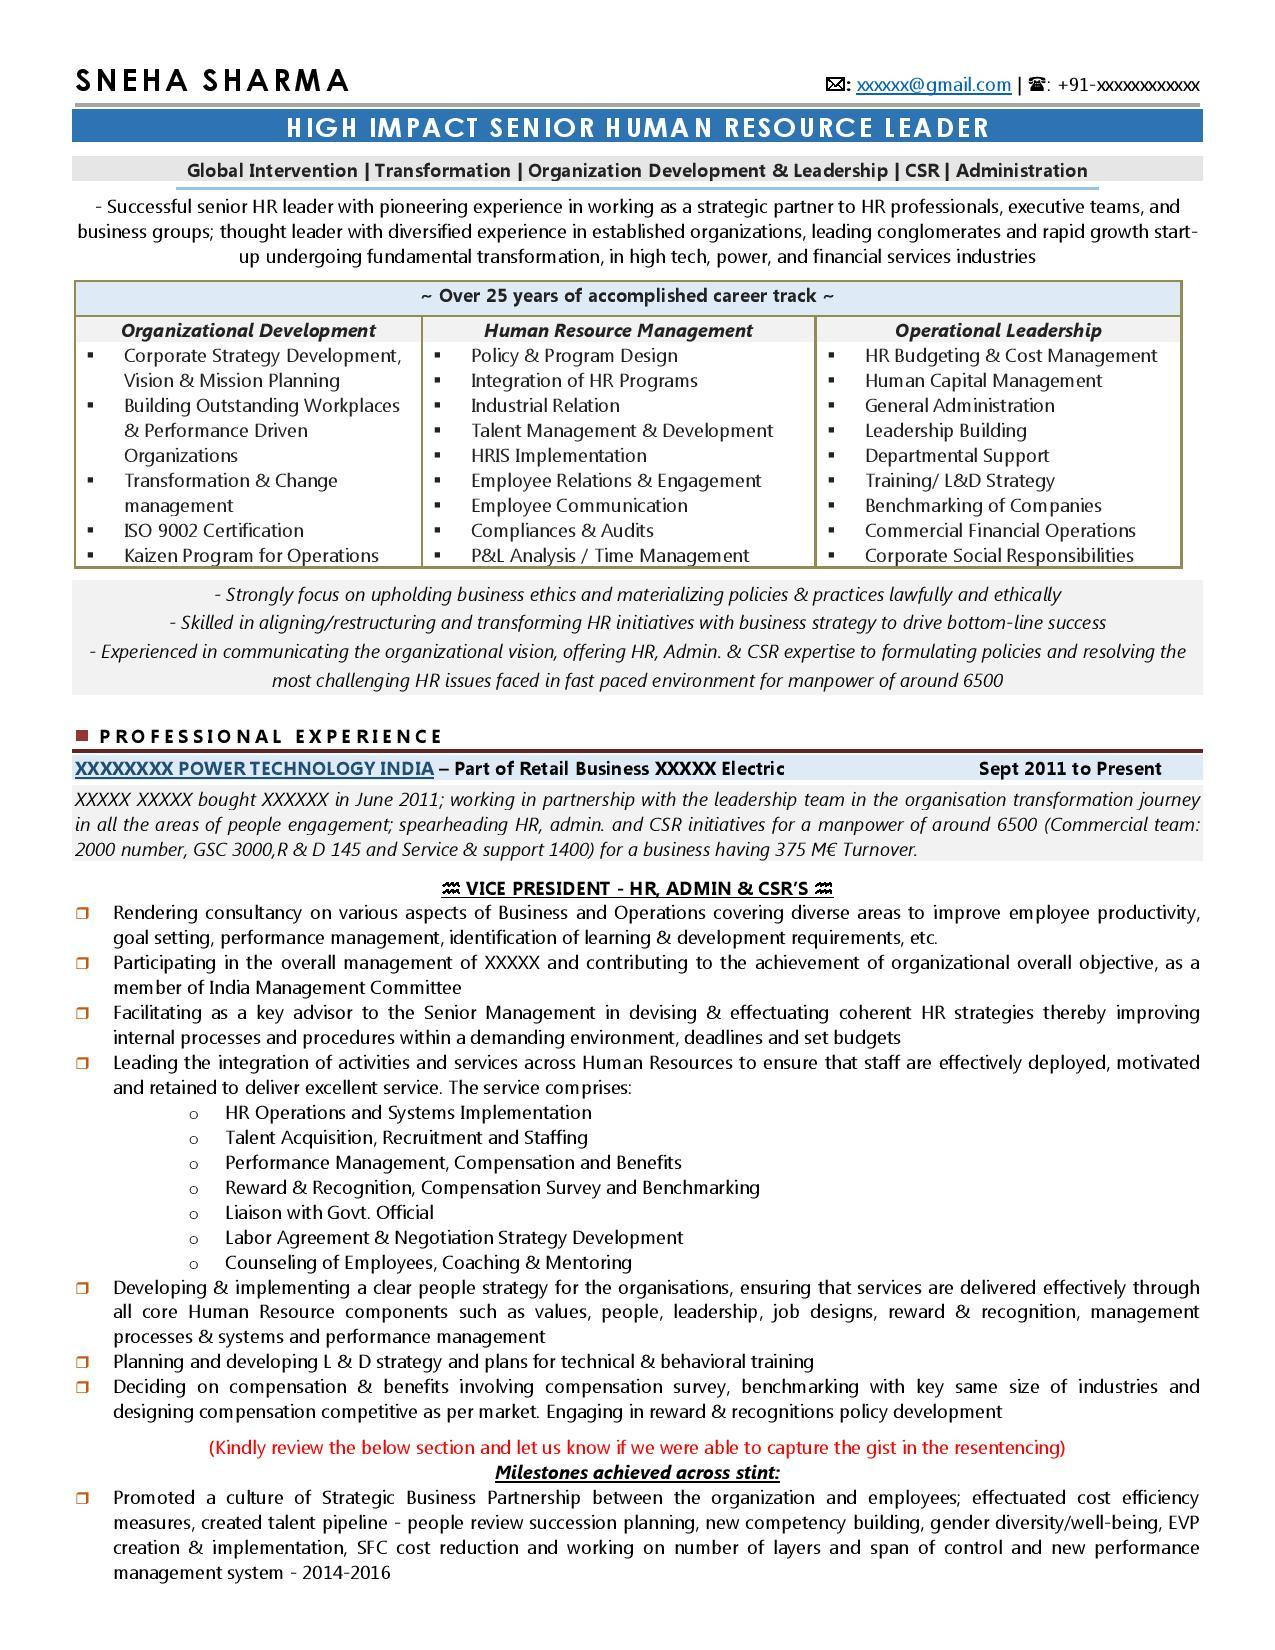 Vice President Of Human Resources Resume Sample Transformation Of A Vp - Hr Resume